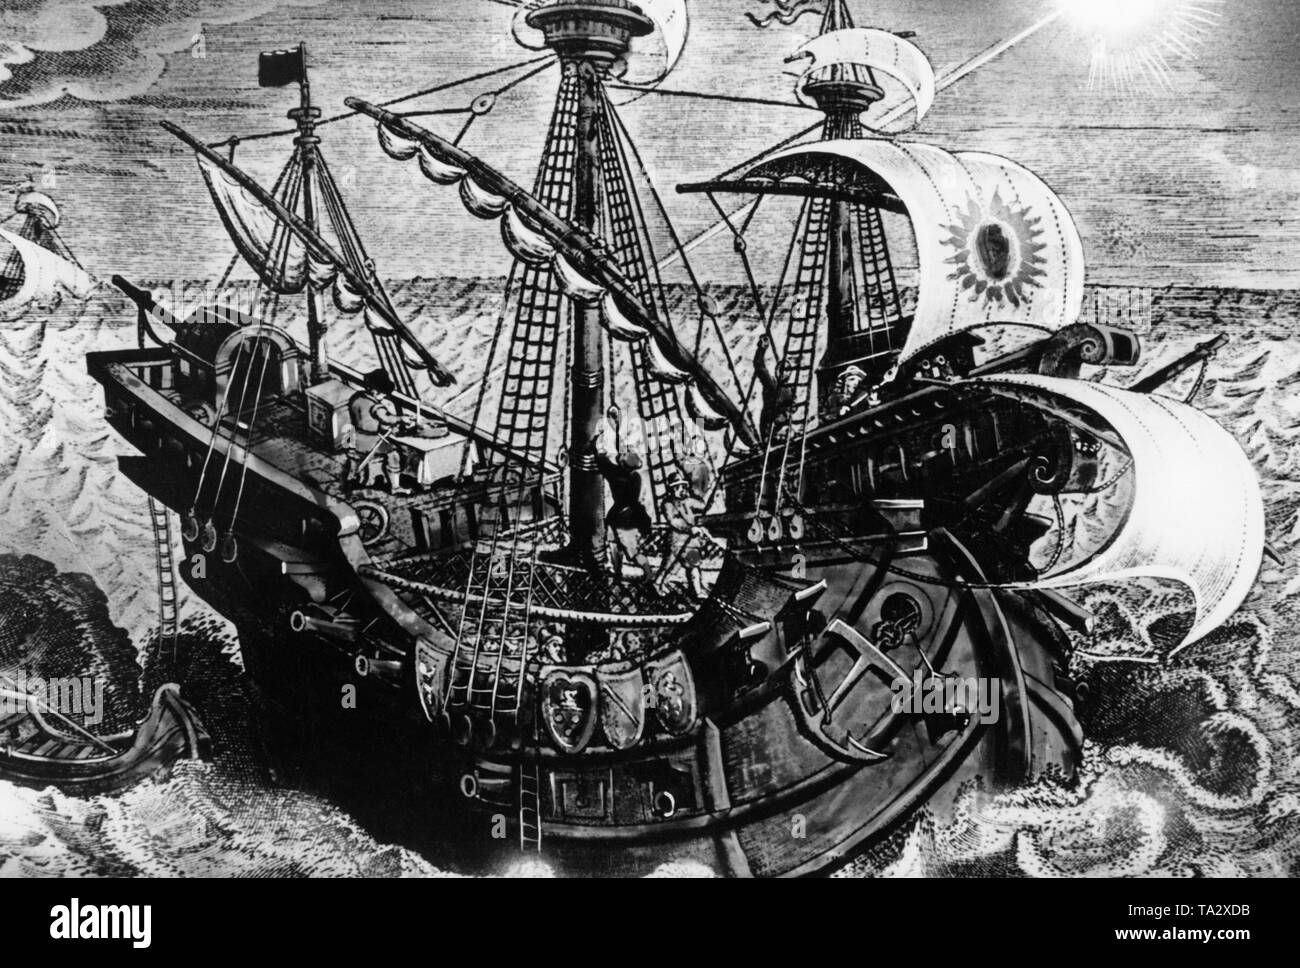 A cog at sea. Cogs were spacious merchant ships, which served the exchange of goods between the cities of the Hanseatic League. - Stock Image